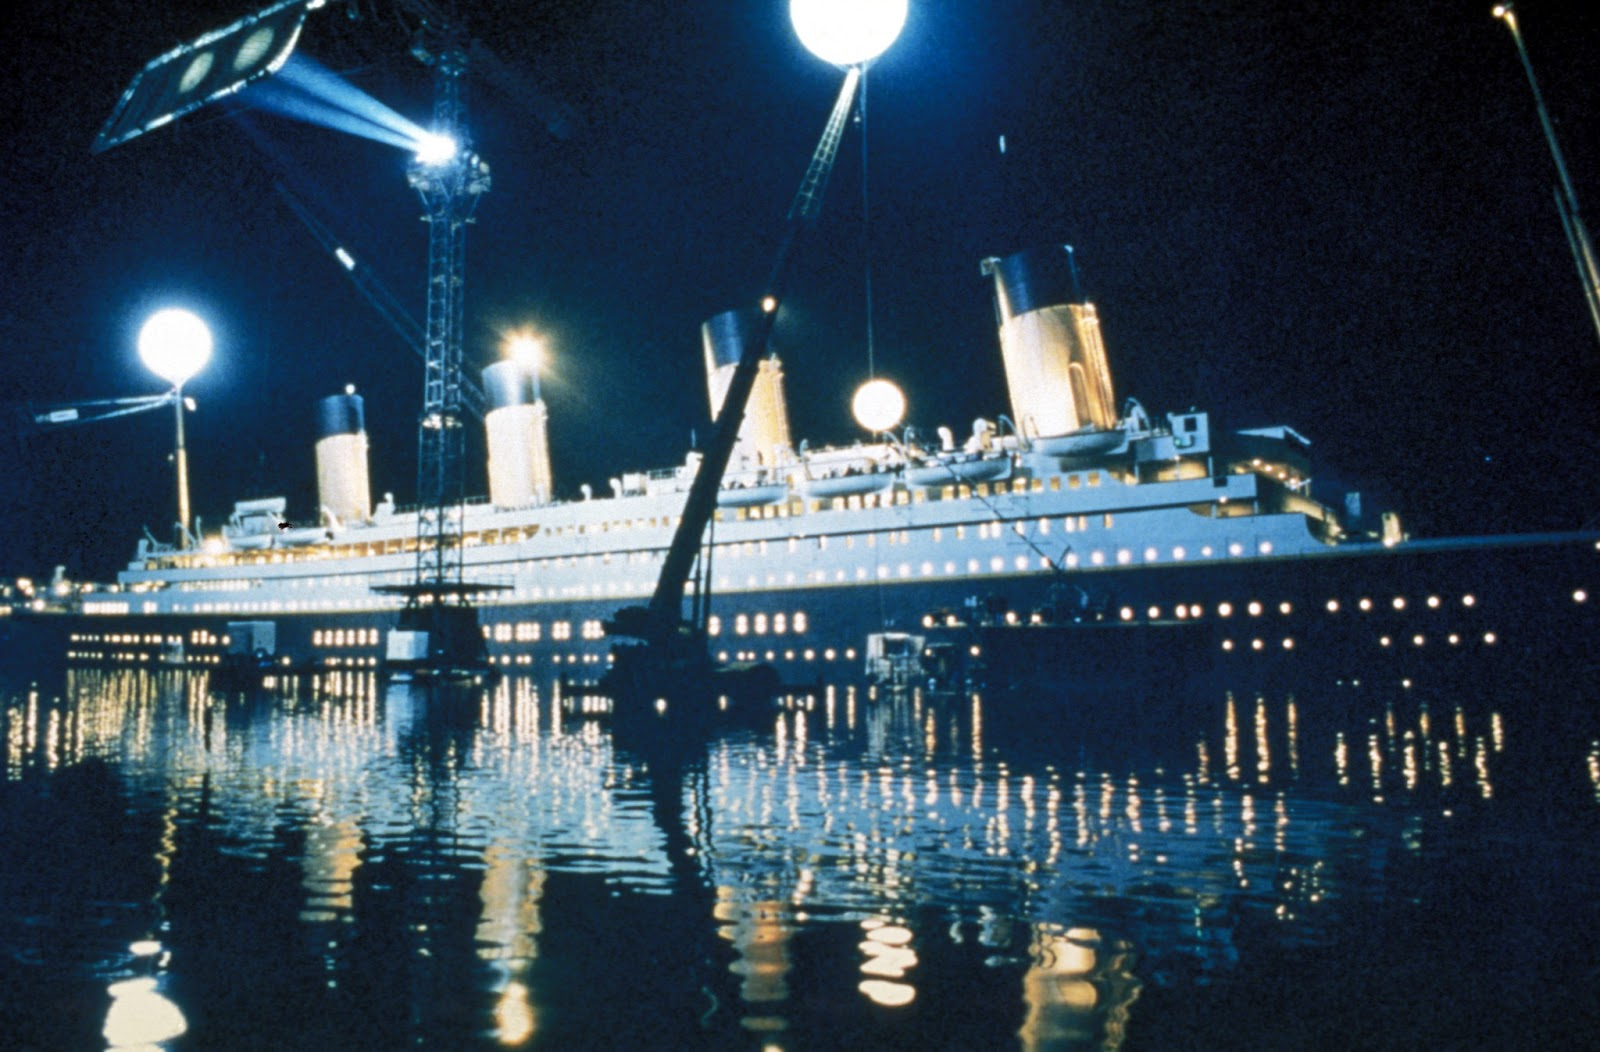 On Set Photo of Titanic - Titanic 3D